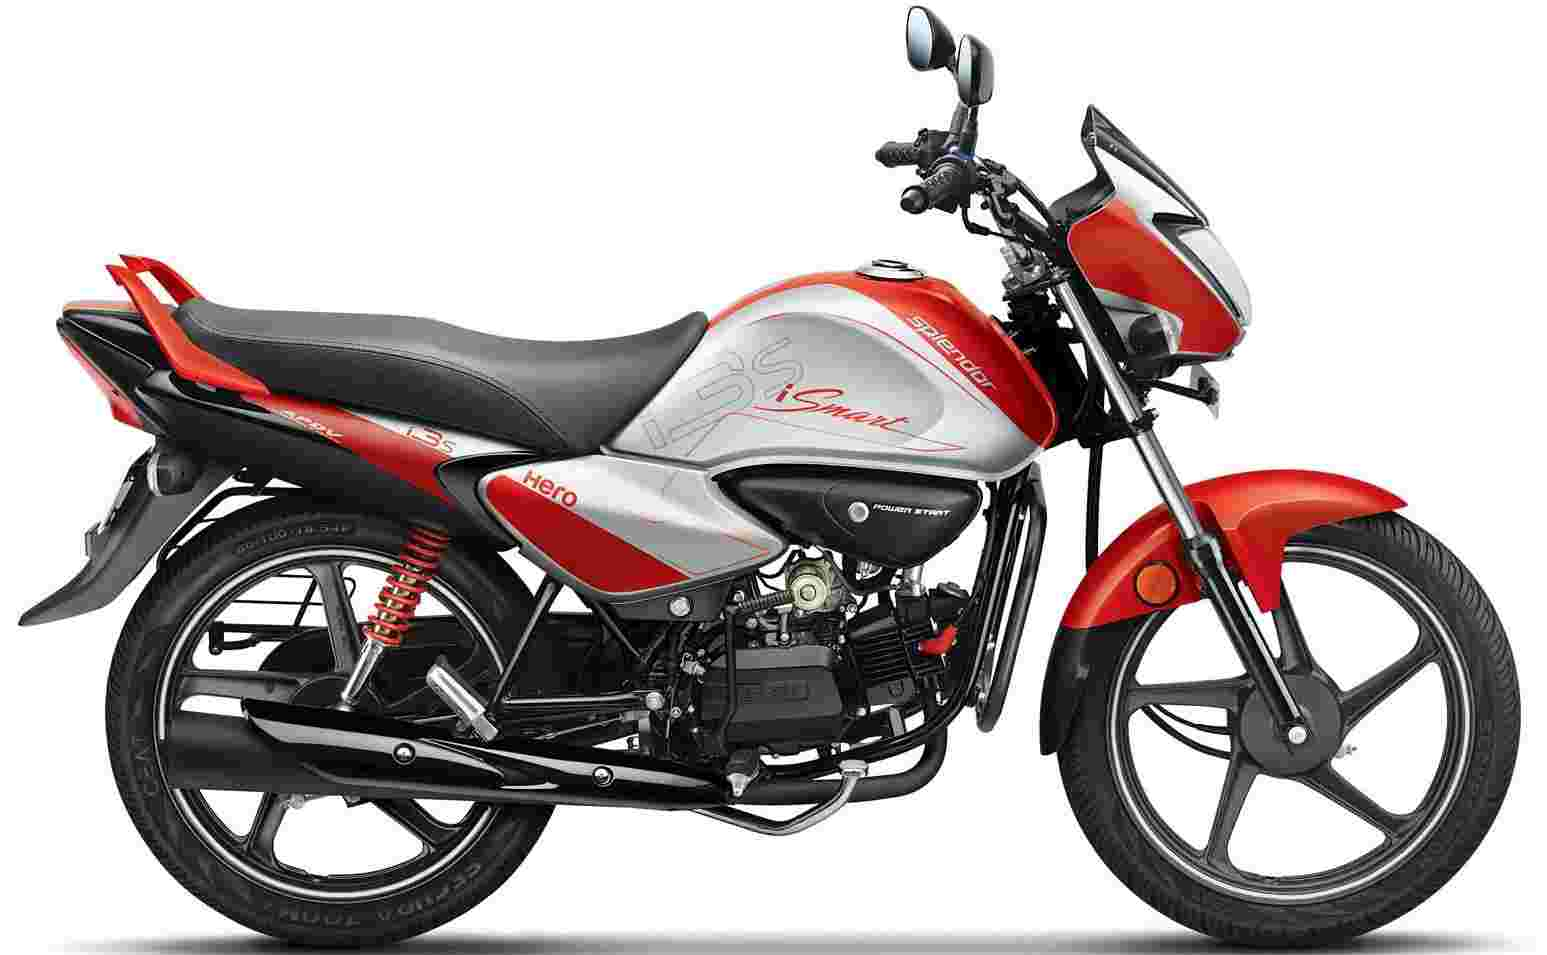 Hero Super Splendor iSmart 125cc